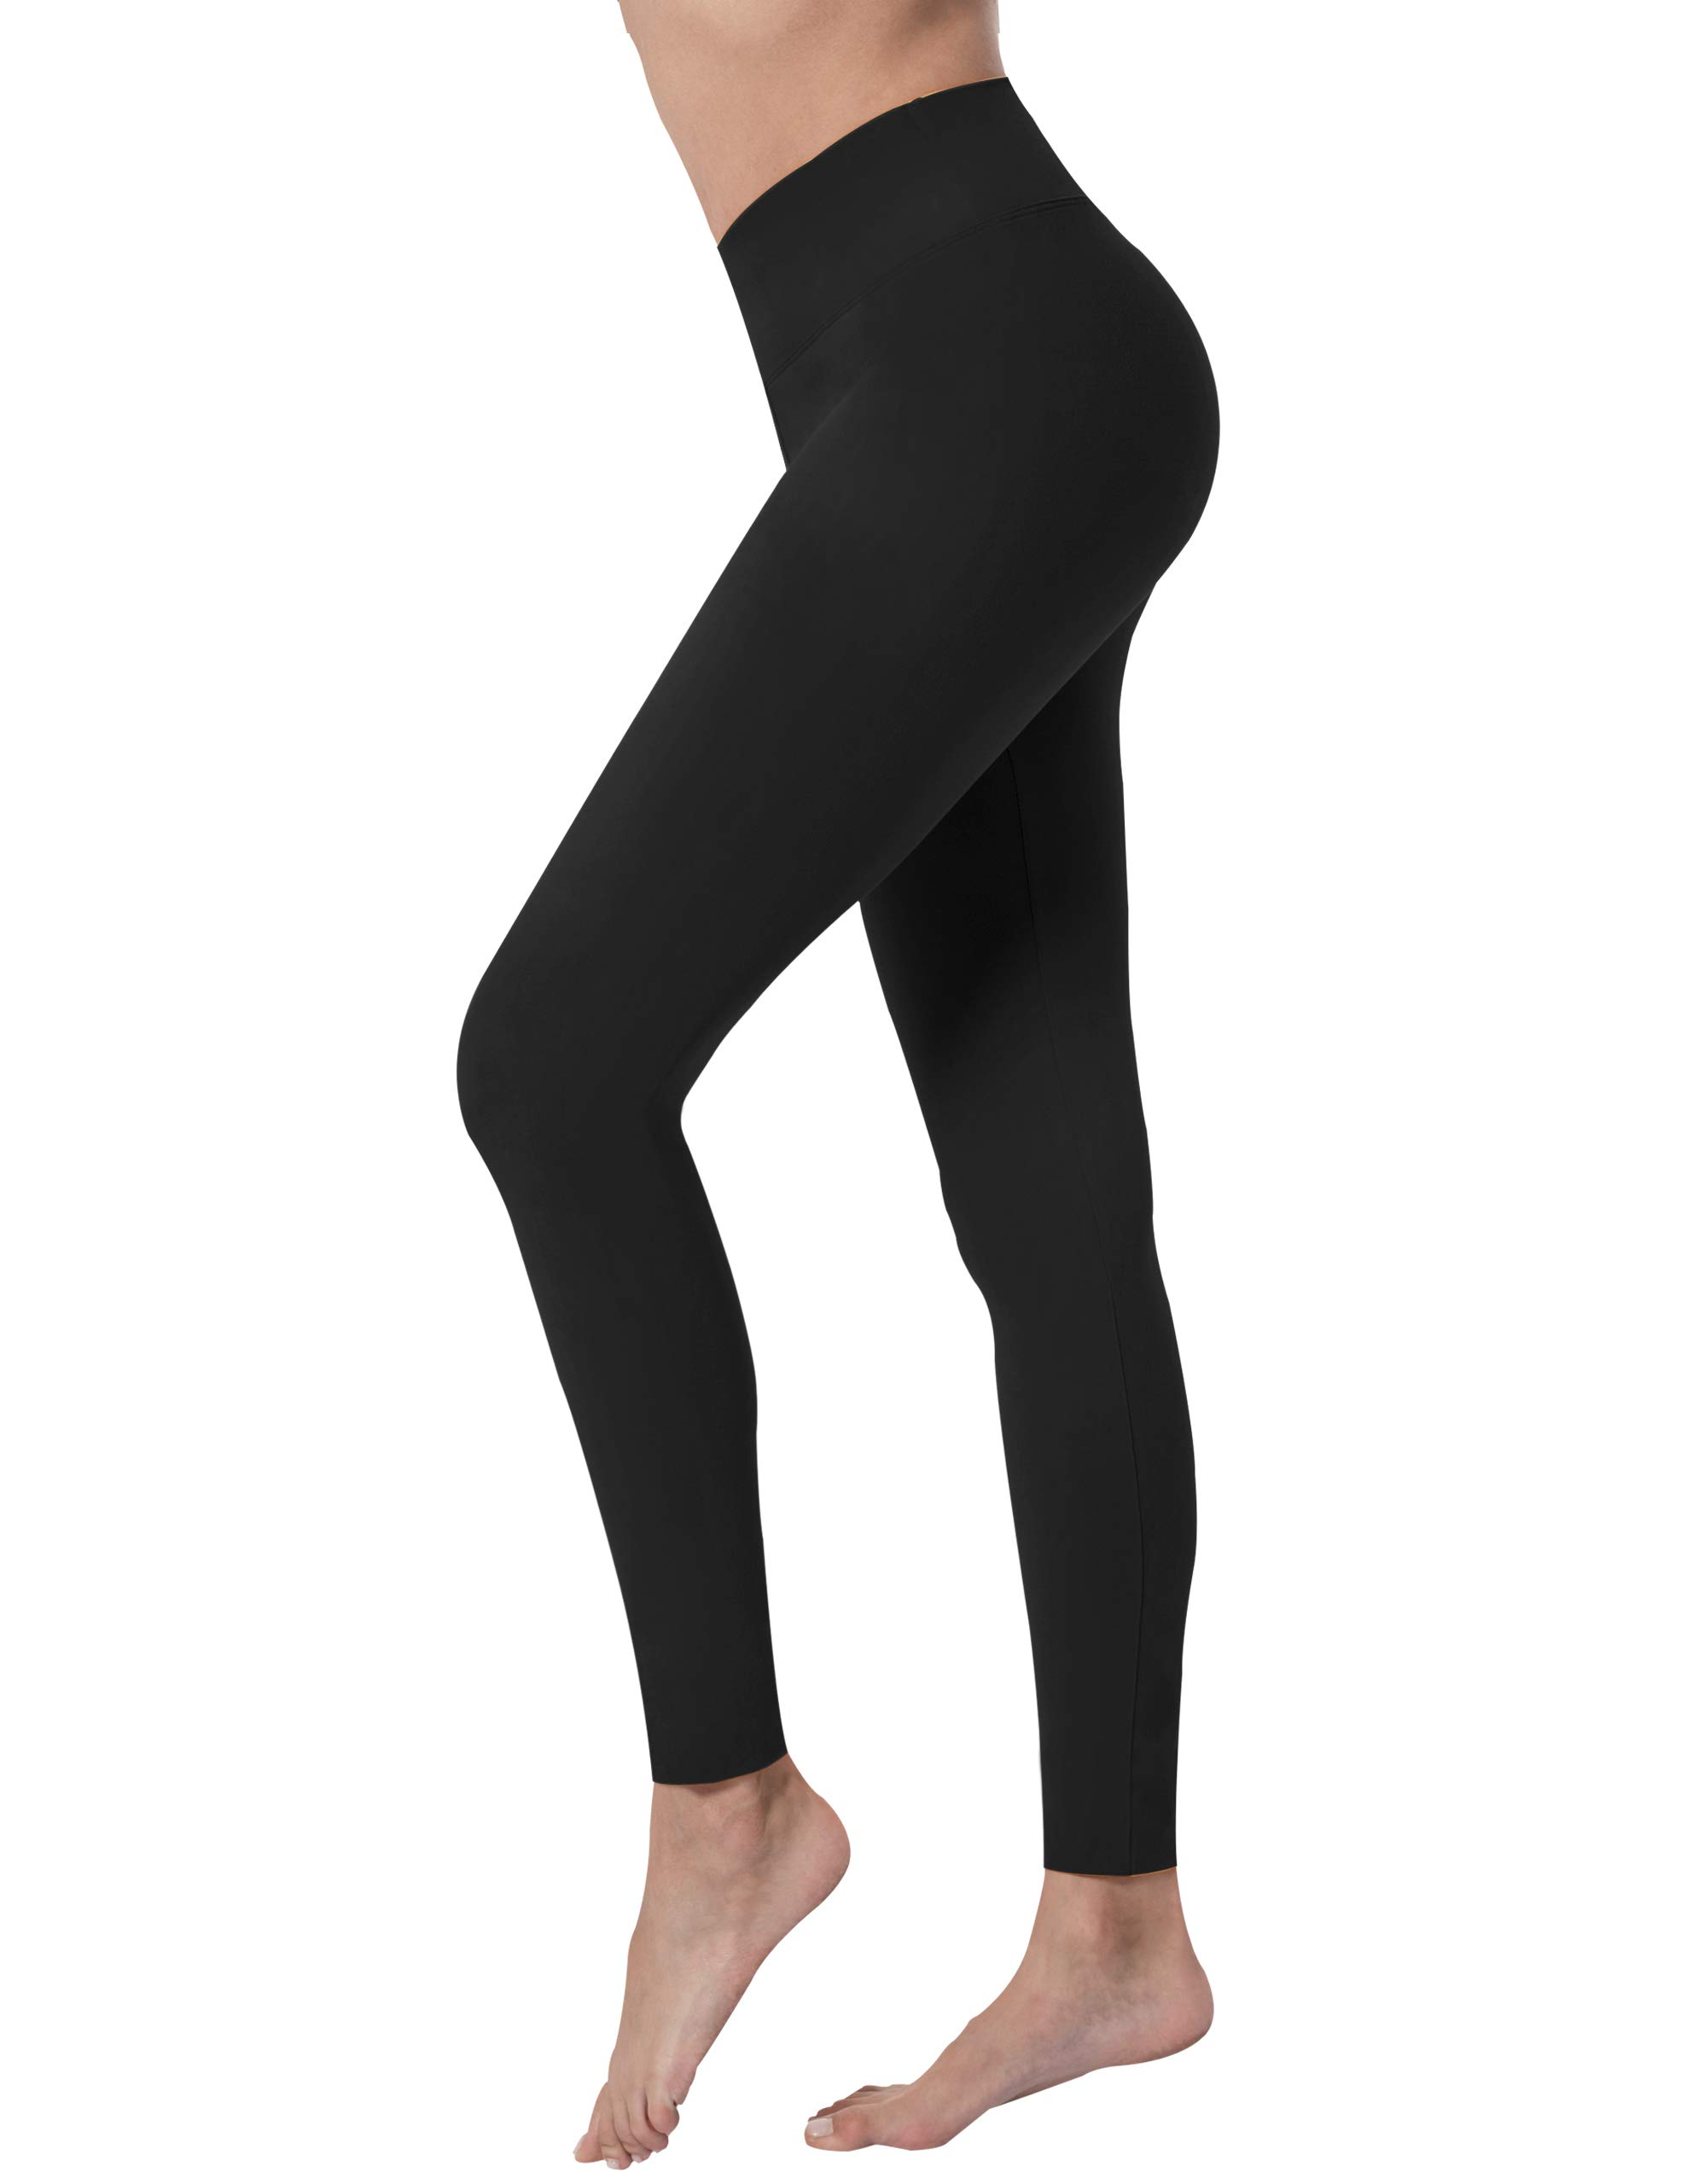 VALANDY High Waisted Leggings for Women Stretch Tummy Control Workout Running Yoga Pants Reg&Plus Size